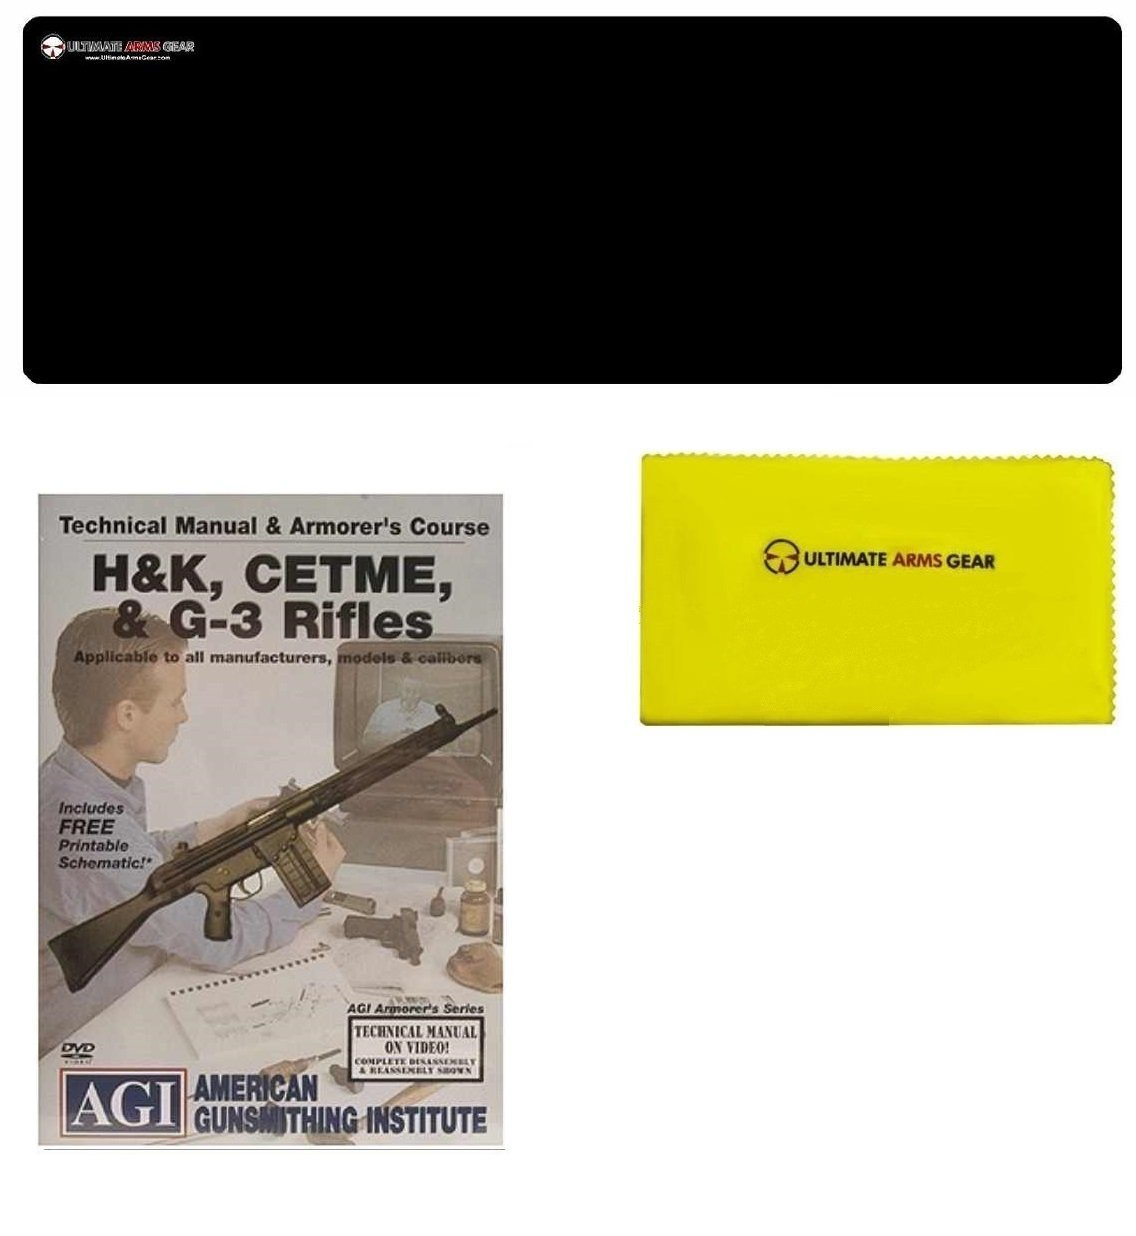 AGI DVD Manual & Armorer's Course HK H&K 91 93 94 MP5 MP-5, CETME & G-3 G3 Rifles + Ultimate Arms Gear Gunsmith & Armorer's Cleaning Bench Gun Mat + Cleaning Cloth